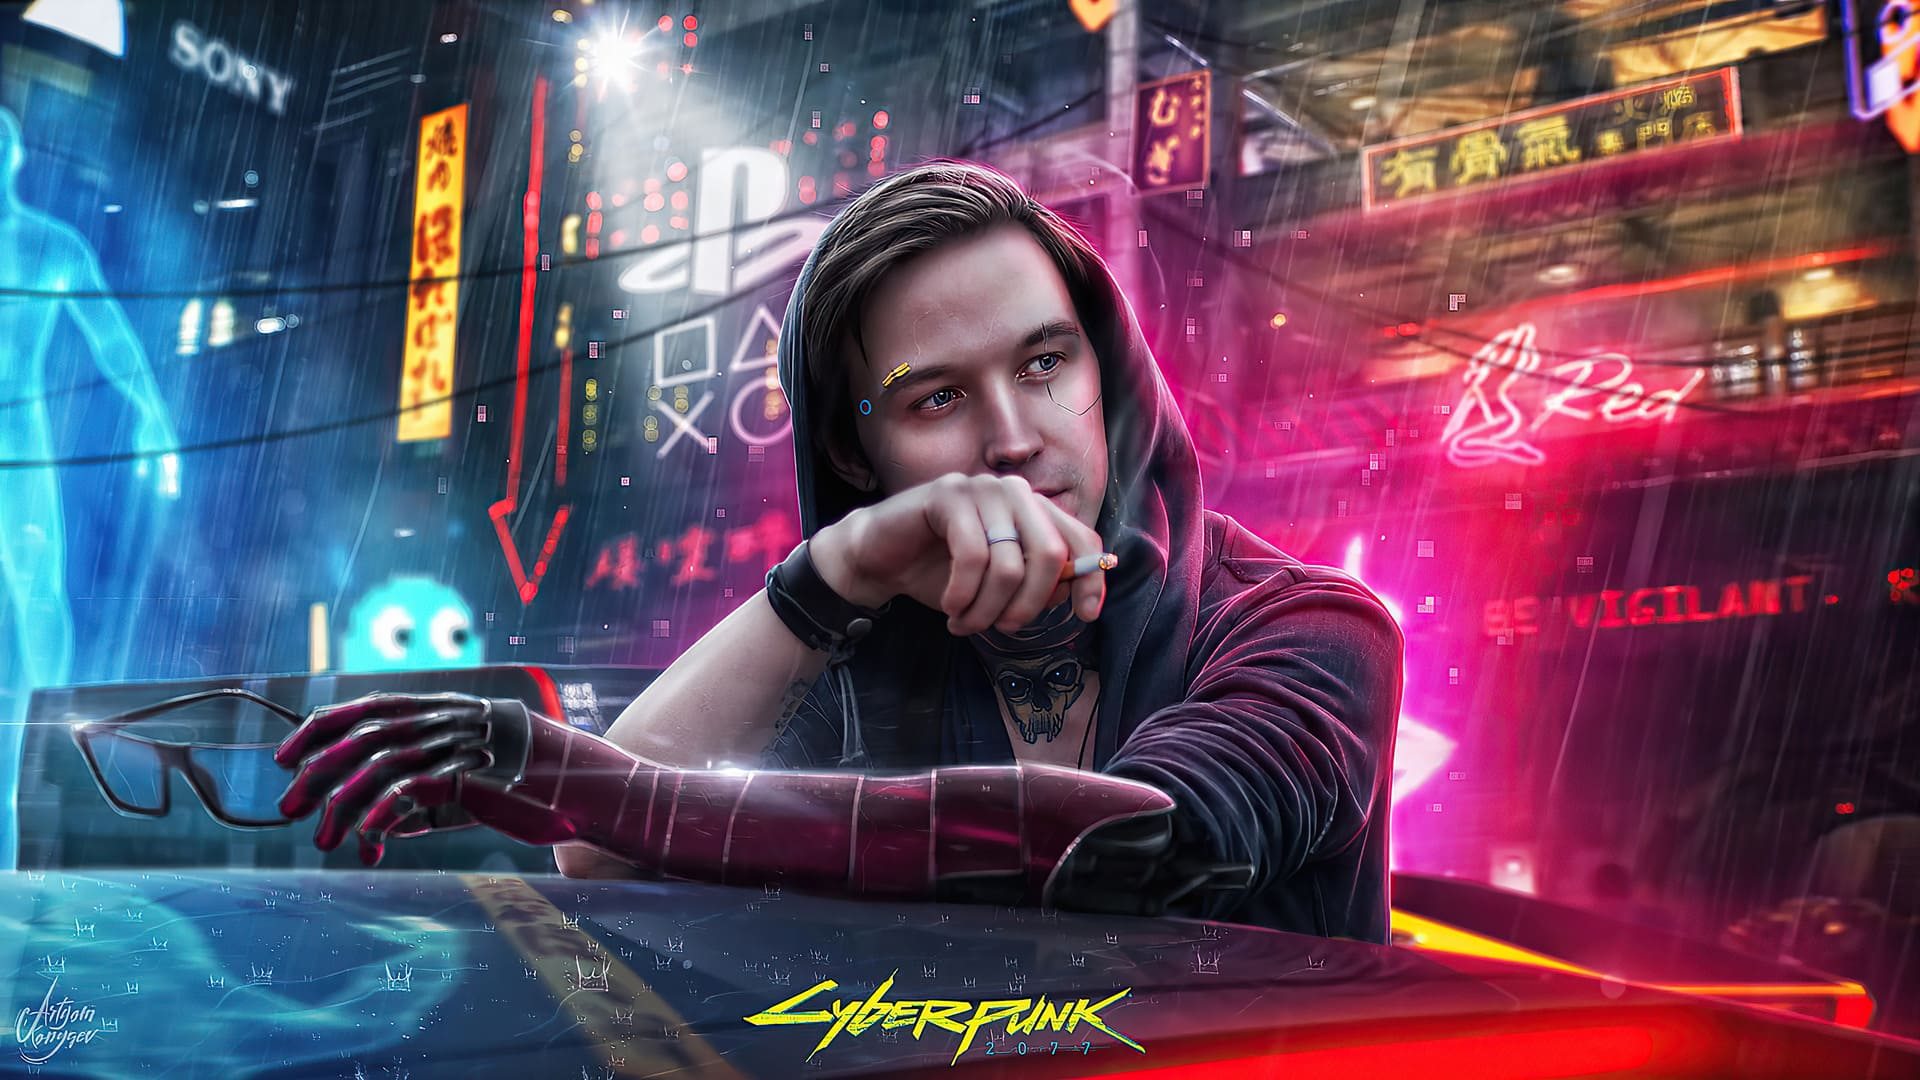 Cyberpunk 2077 Desktop Wallpaper Top Cyberpunk 2077 Wallpaper For Desktop